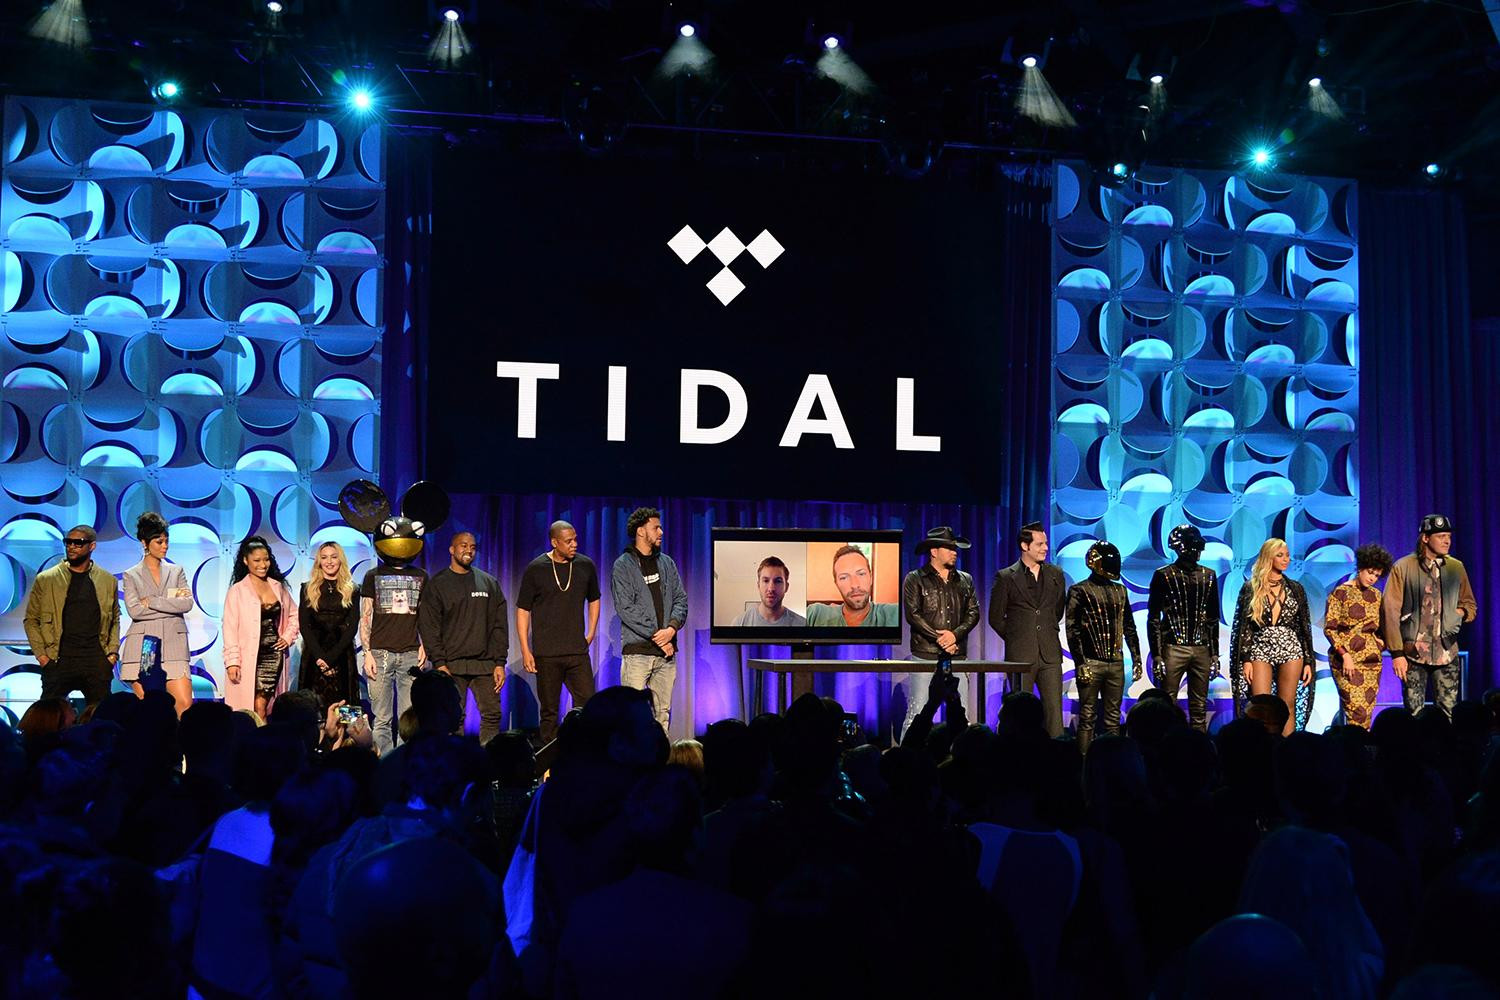 tidal-announcement-1500x1000